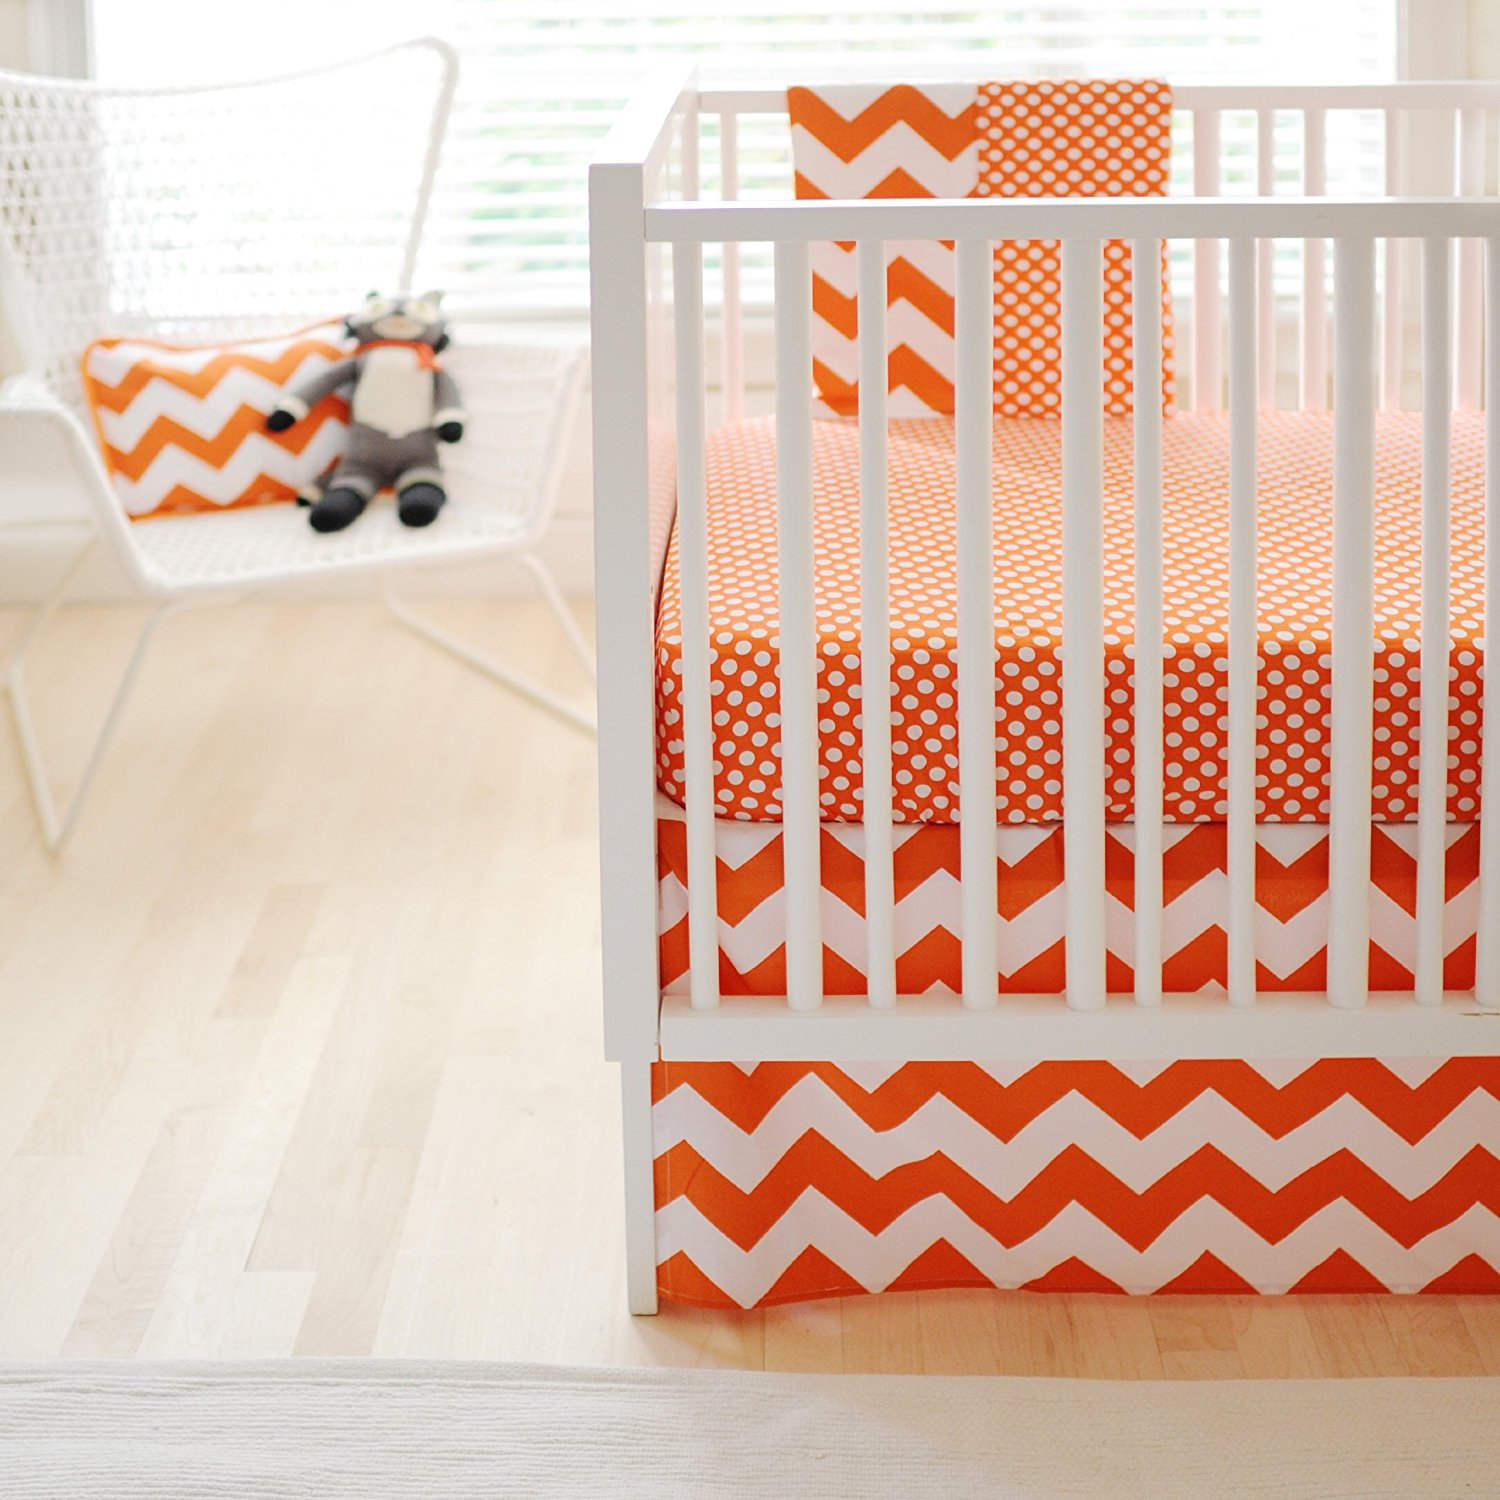 New Arrivals Zig Zag Baby 2 Piece Crib Bedding Set, Tange...